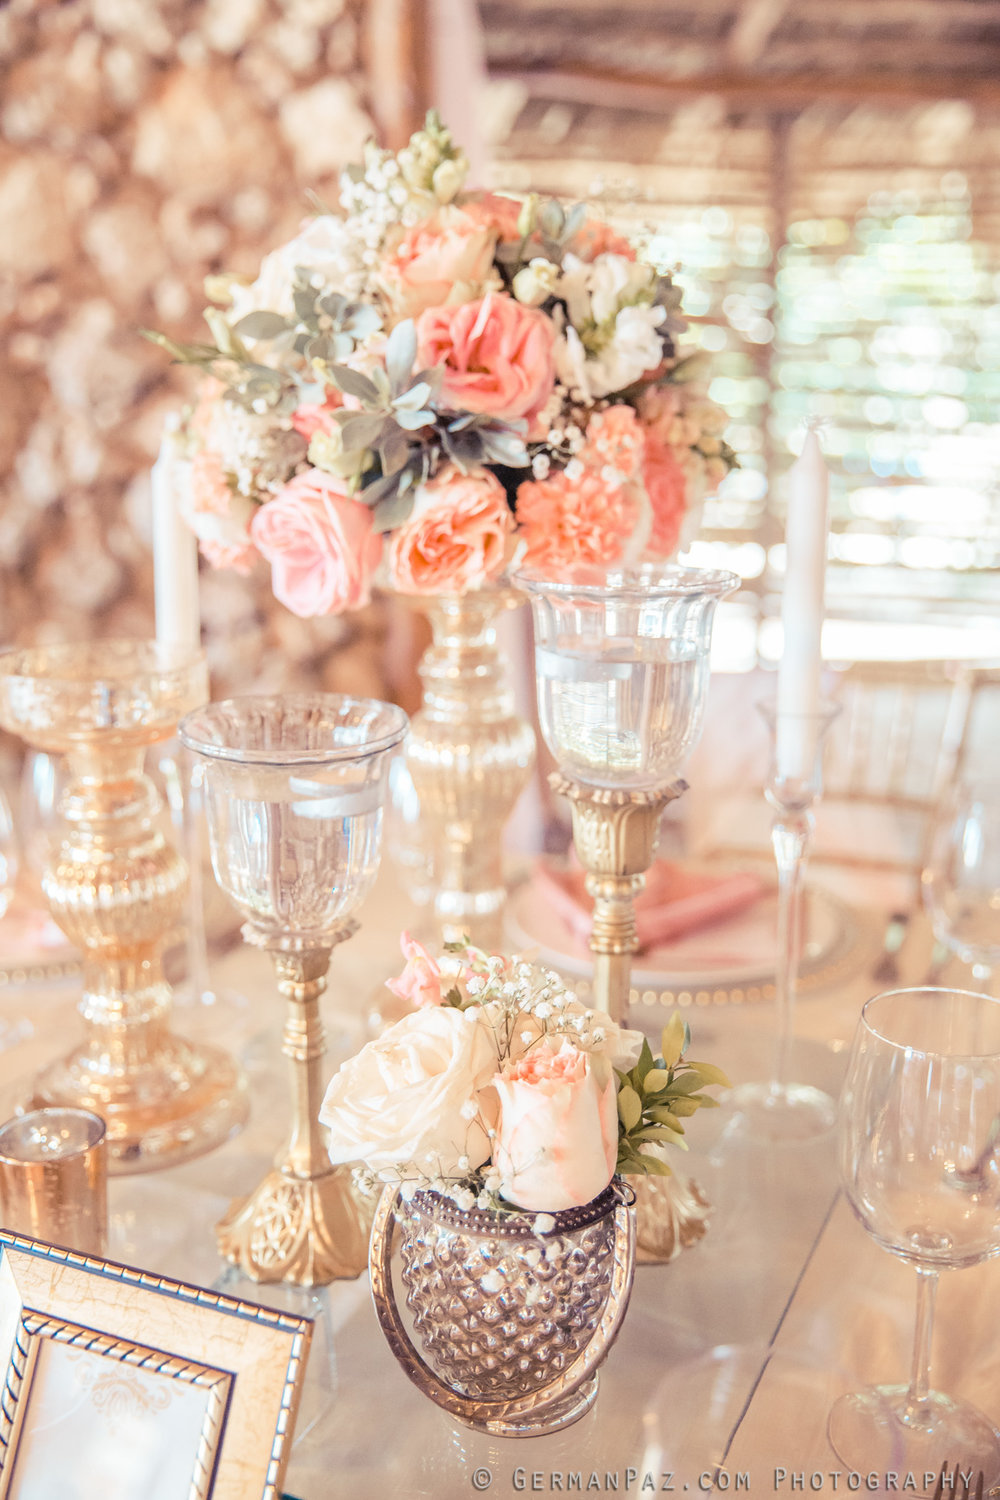 Patricia & Rad, May 22, 2016 Decor by Natalia Roldan Venue: Huracan Cafe Photo by  German Paz